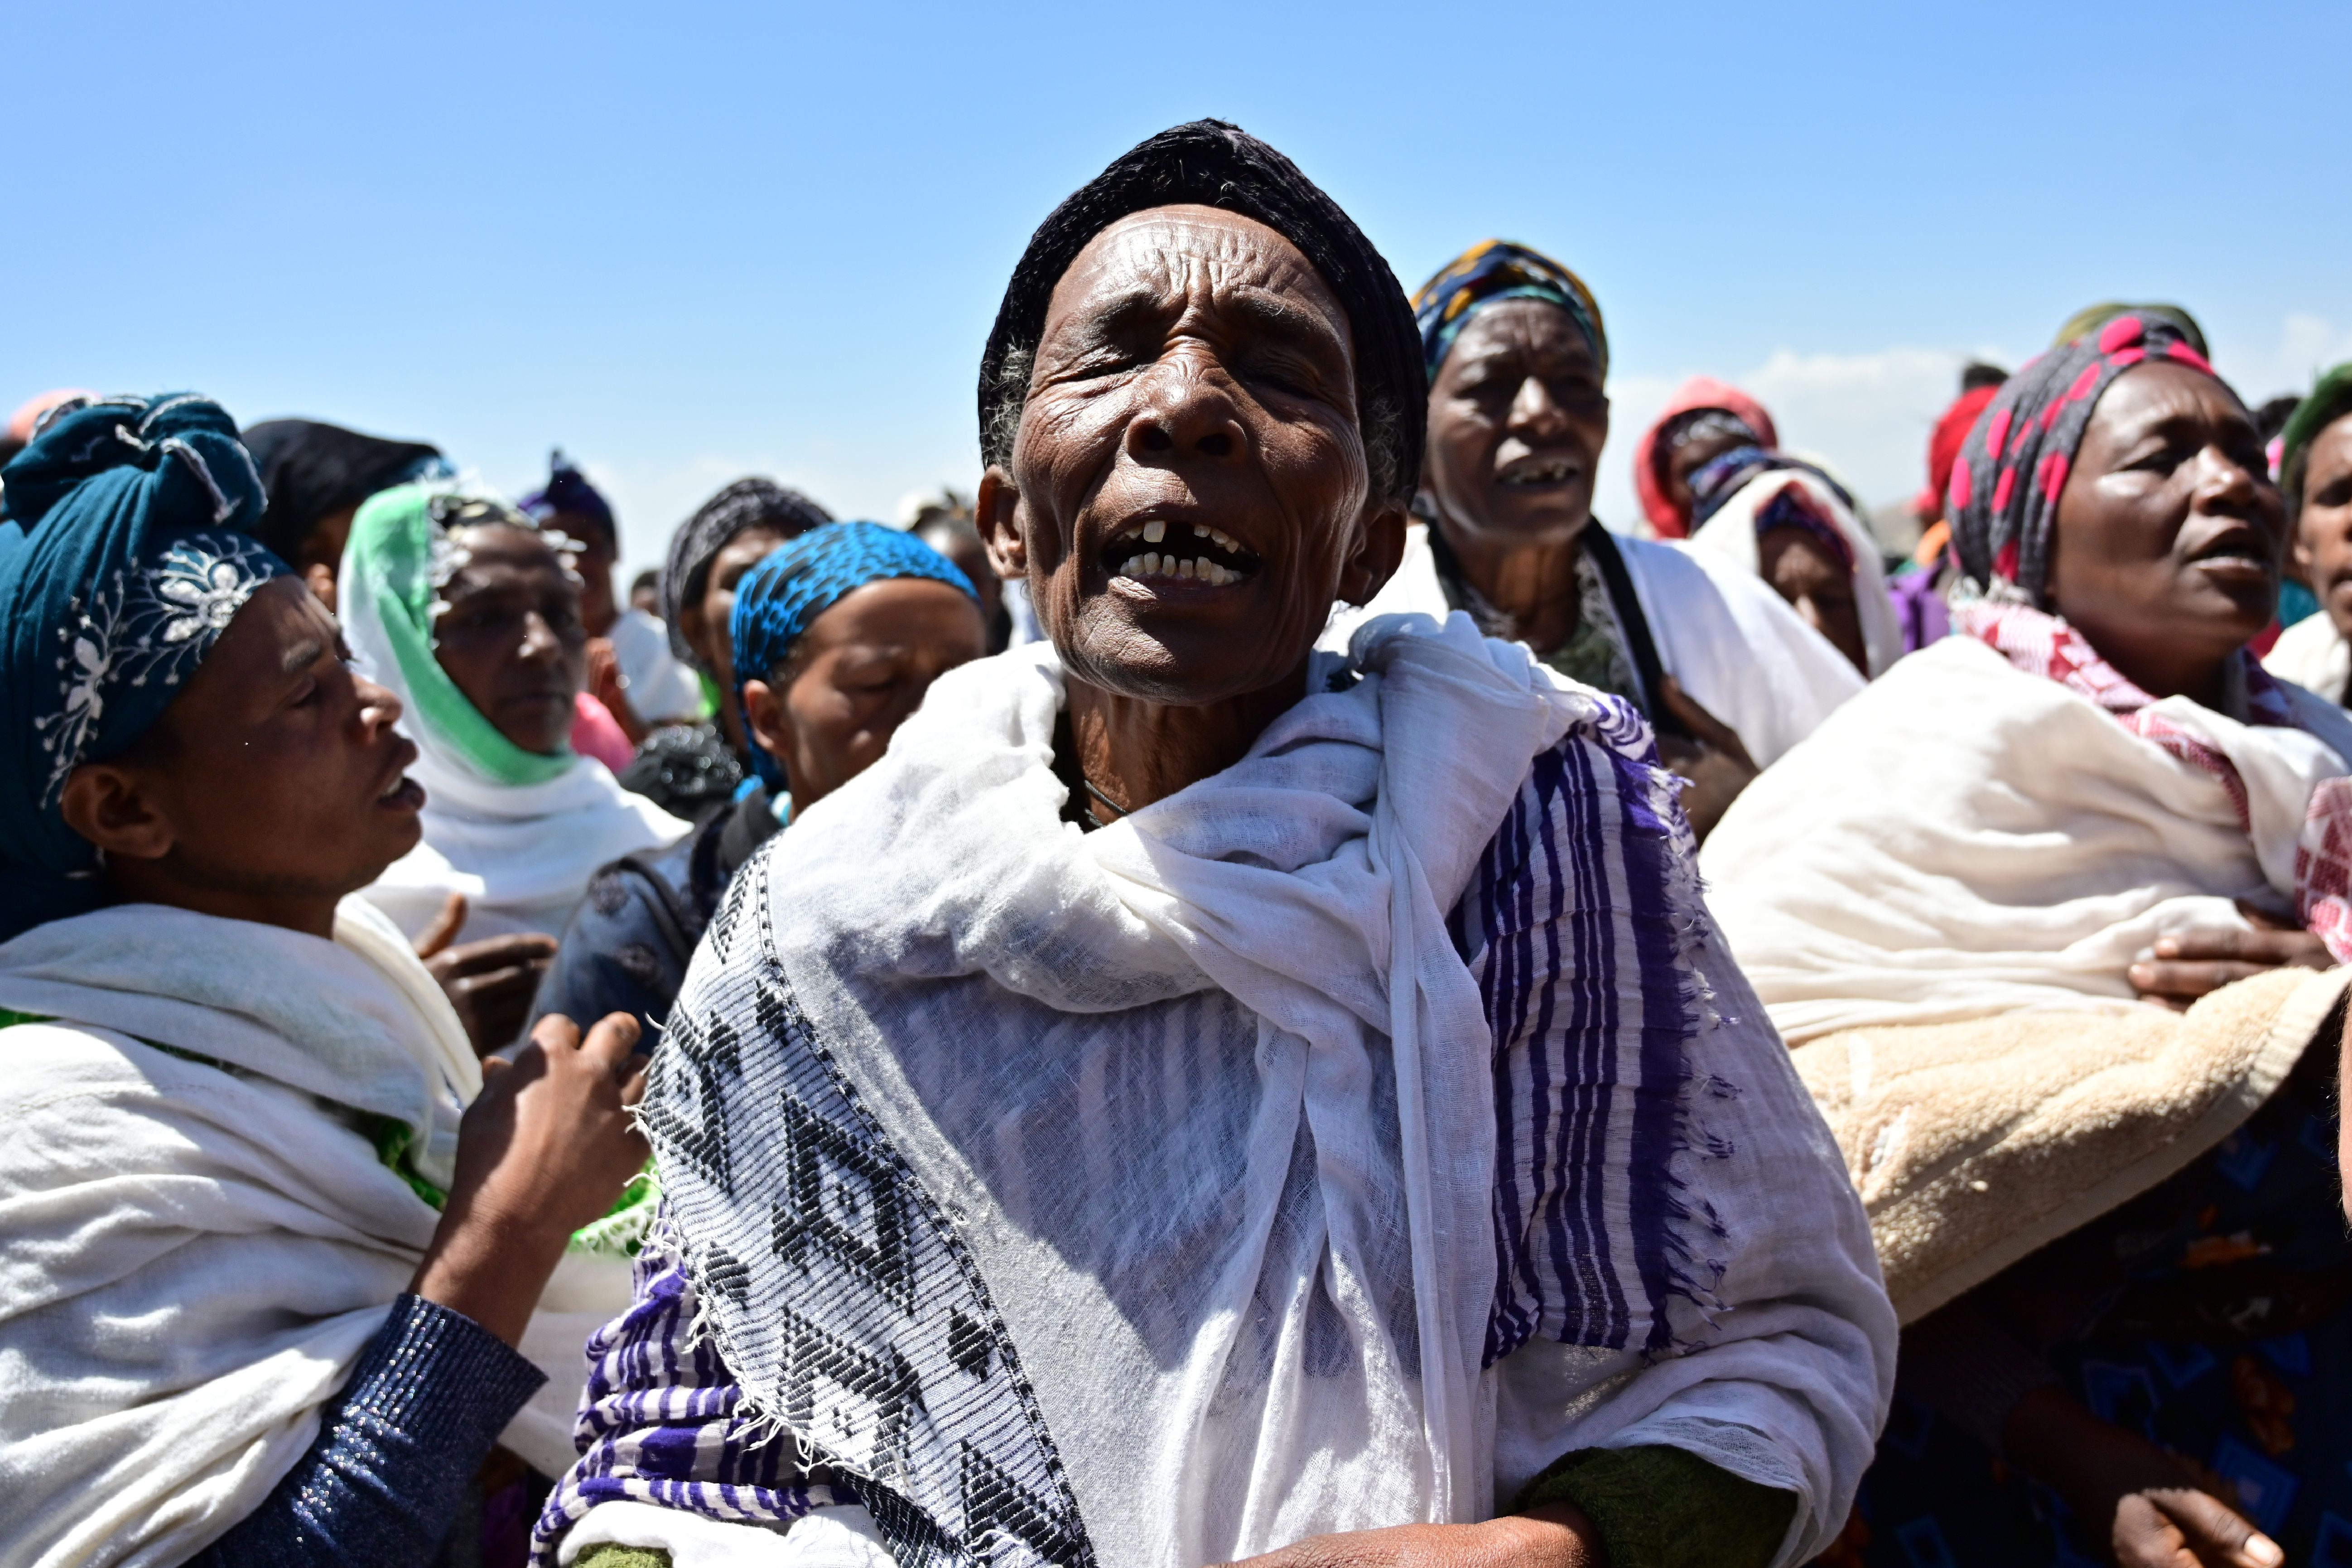 Oromo women perform a traditional chant at the crash site of the Ethiopian Airlines operated Boeing 737 MAX aircraft which killed 157 passengers and crew onboard, at Hama Quntushele village, near Bishoftu, in Oromia region, on March 15, 2019. (TONY KARUMBA/AFP/Getty Images)